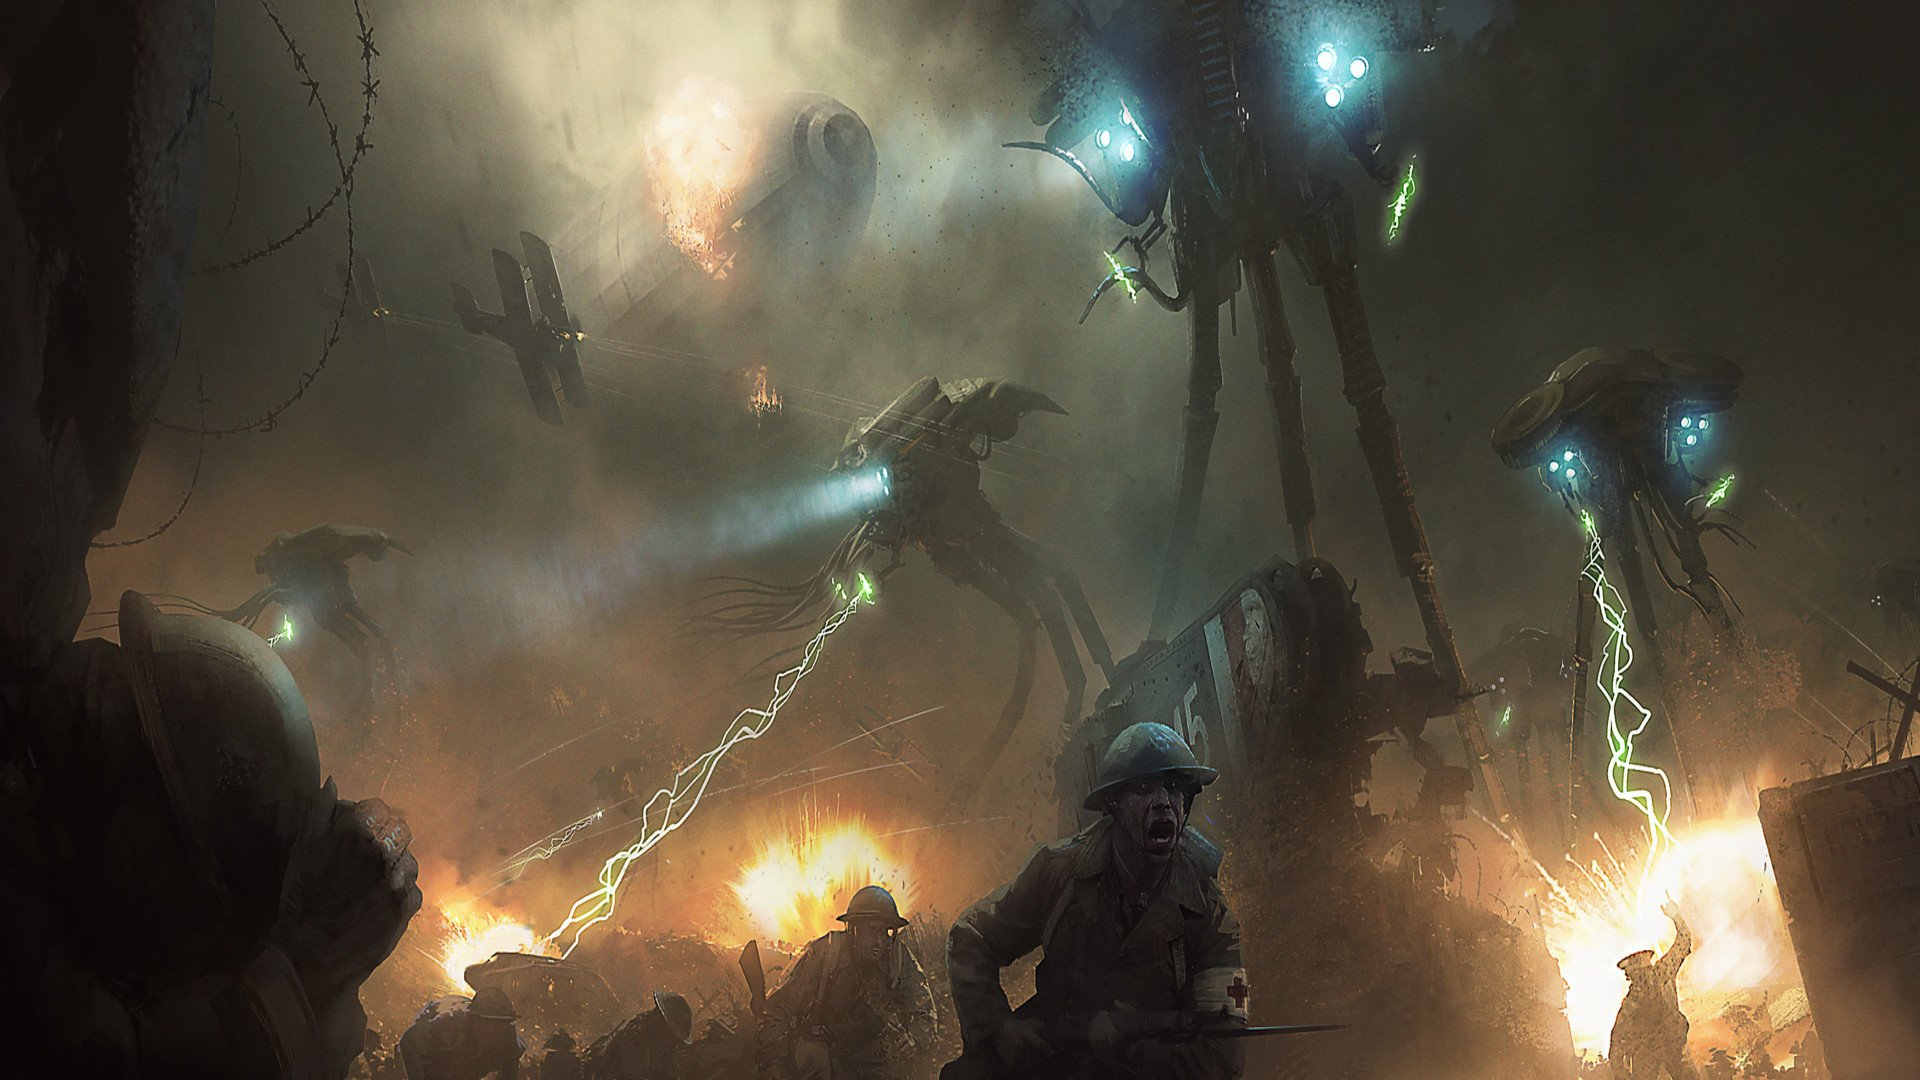 War Of The Worlds Hd Wallpaper Background Image 1920x1080 Id